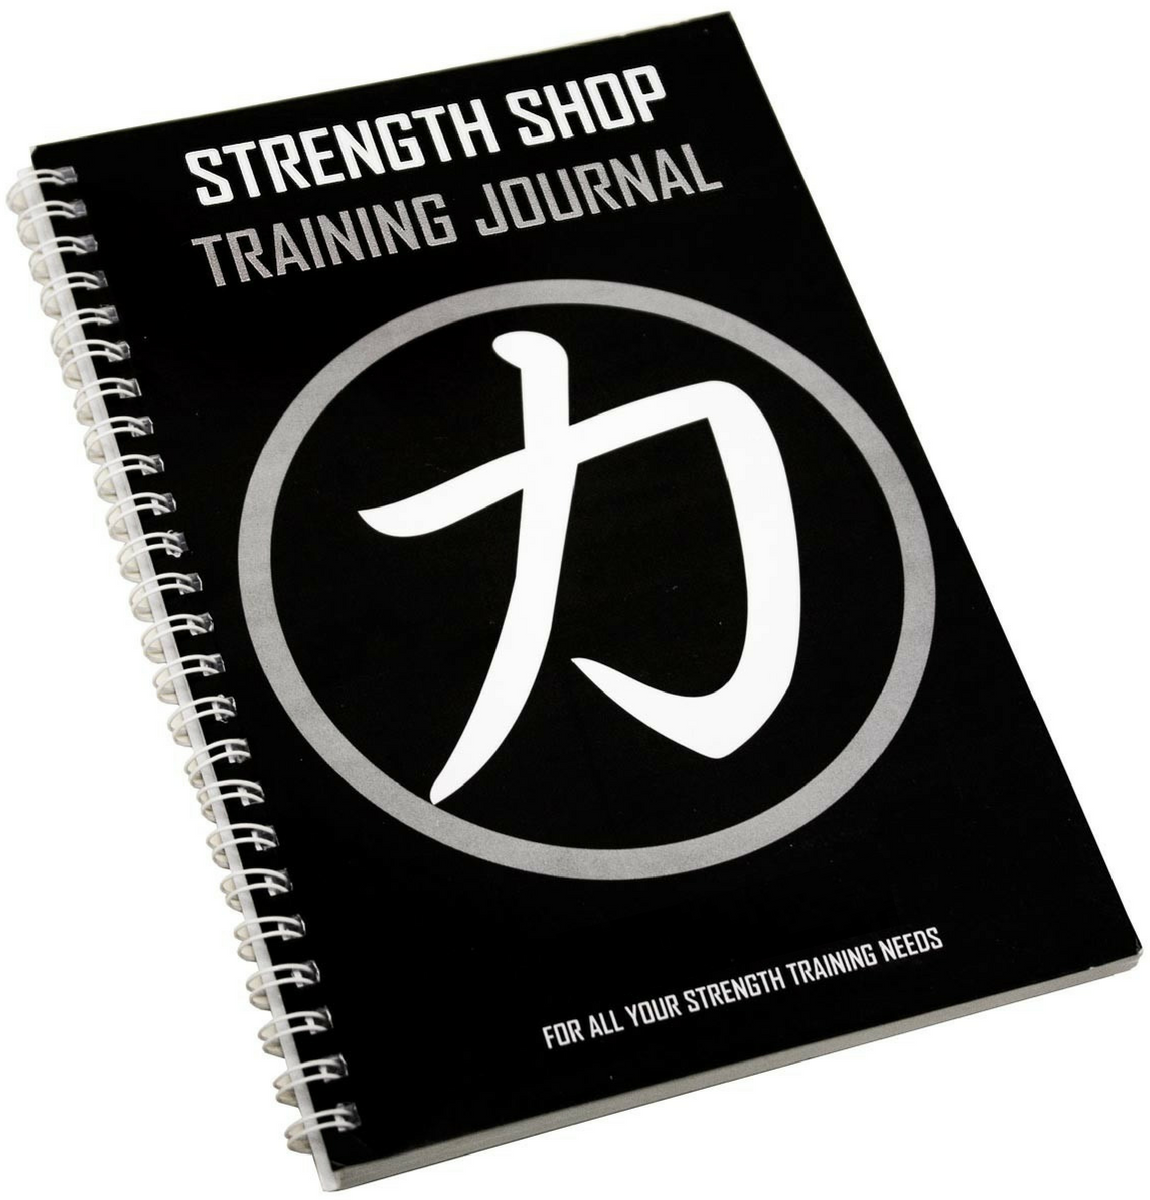 Strength Shop Training Journal - Strength Shop USA